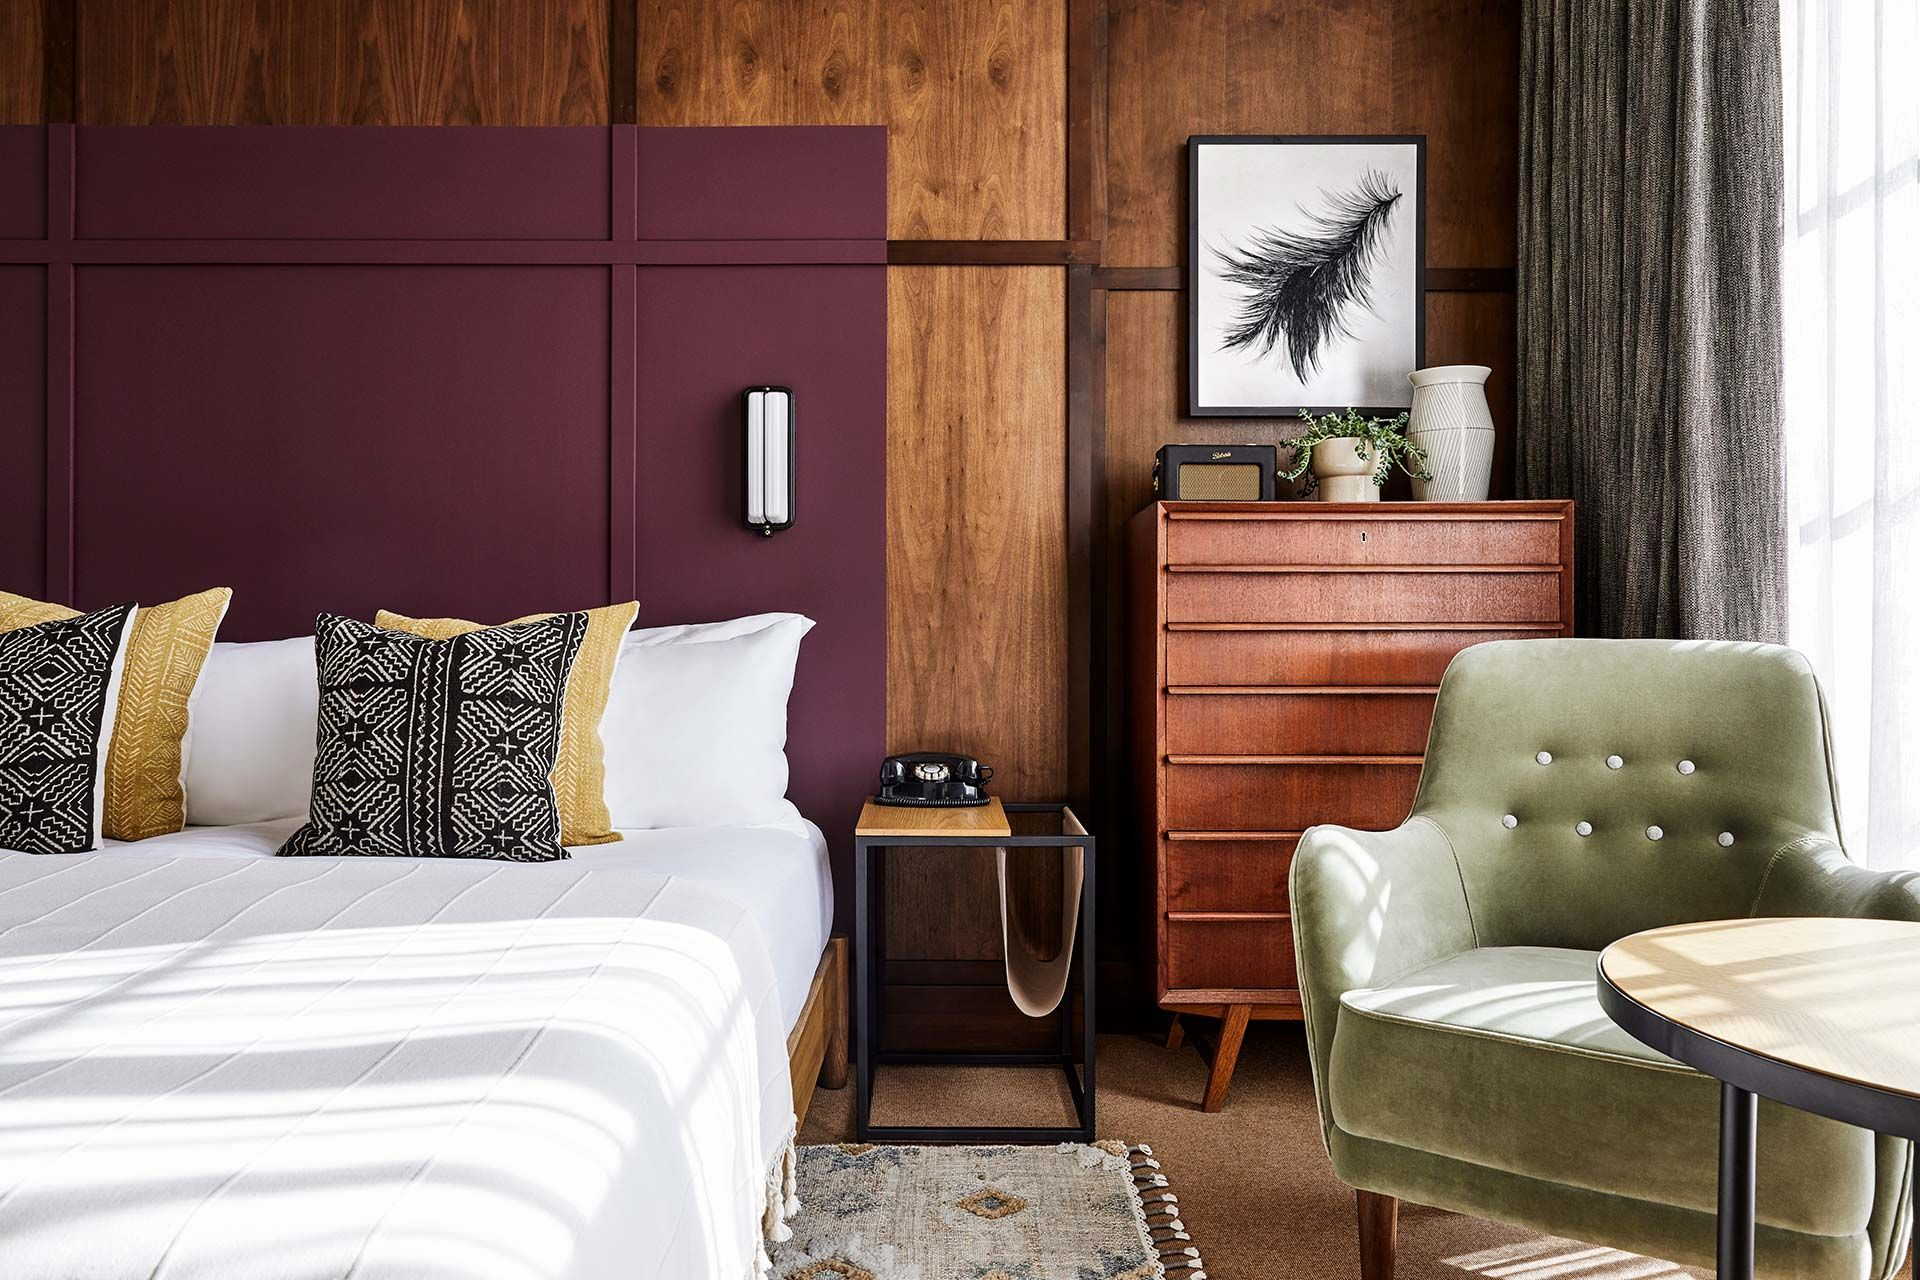 A new hotel in Portland, Oregon, The Hoxton offers 119